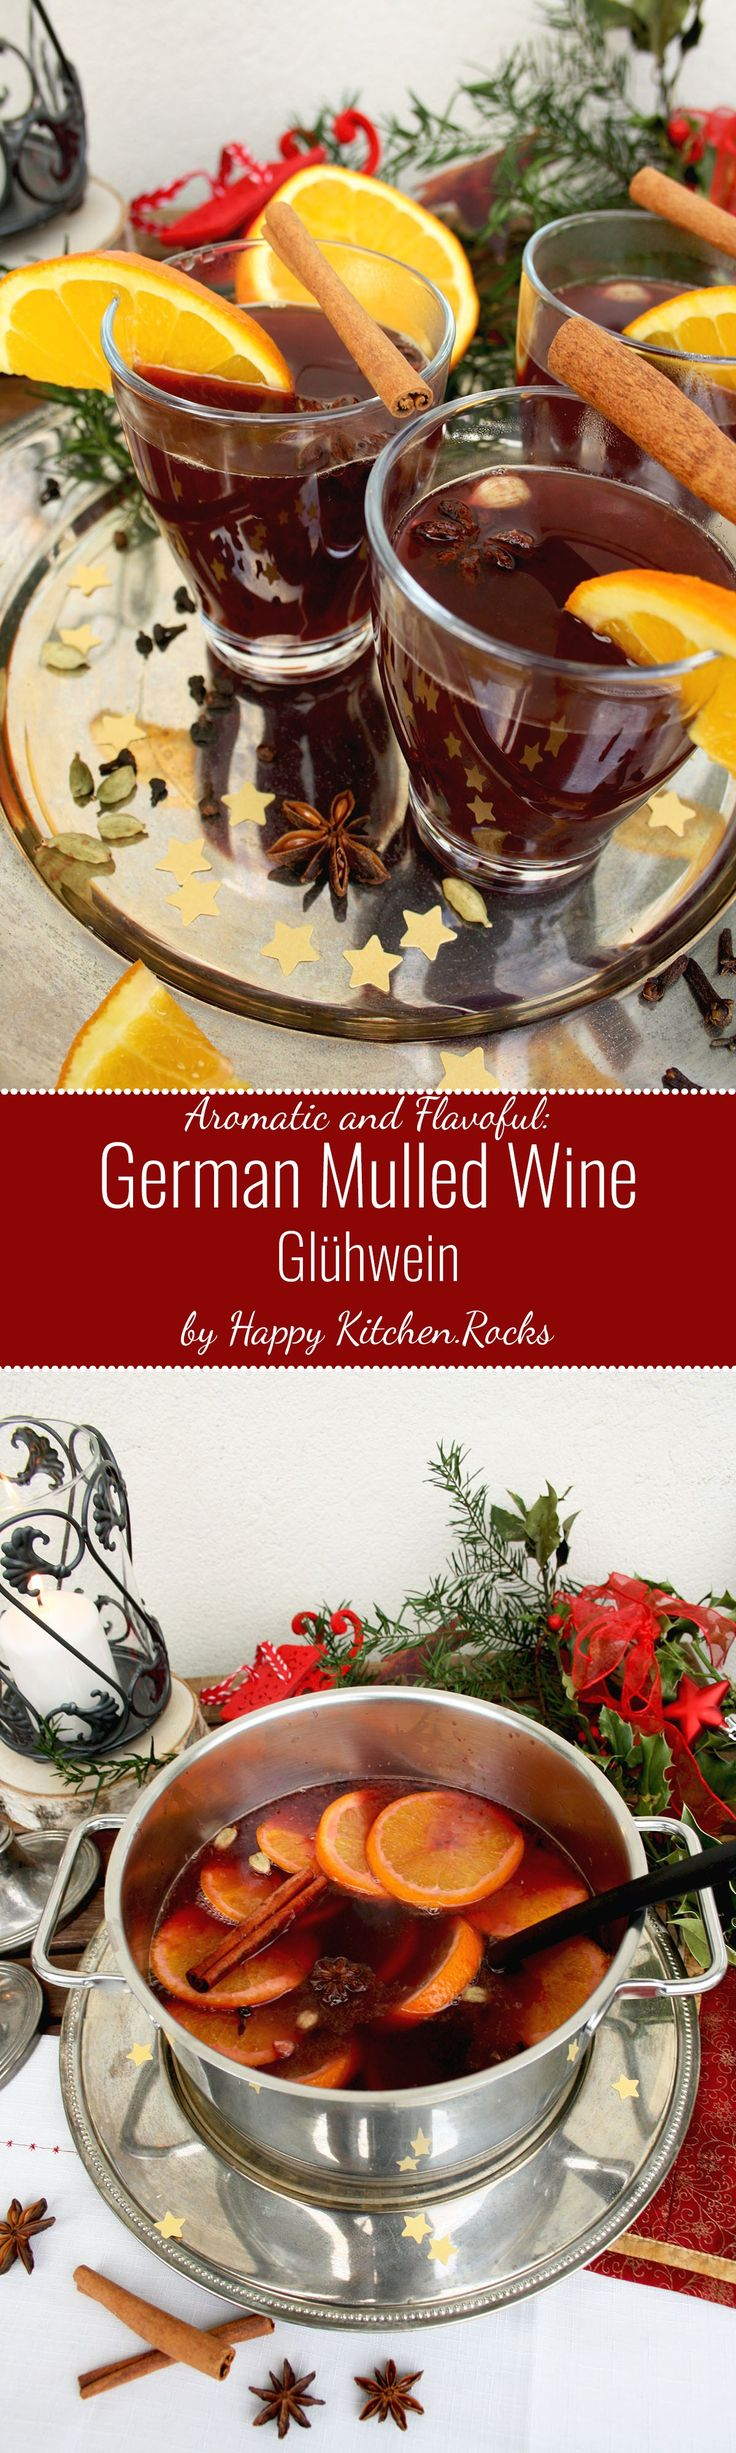 German Mulled Wine (Glühwein) contains all traditional Christmas spices as well as a fruity hint of citrus.It's very easy to make and it looks impressive!